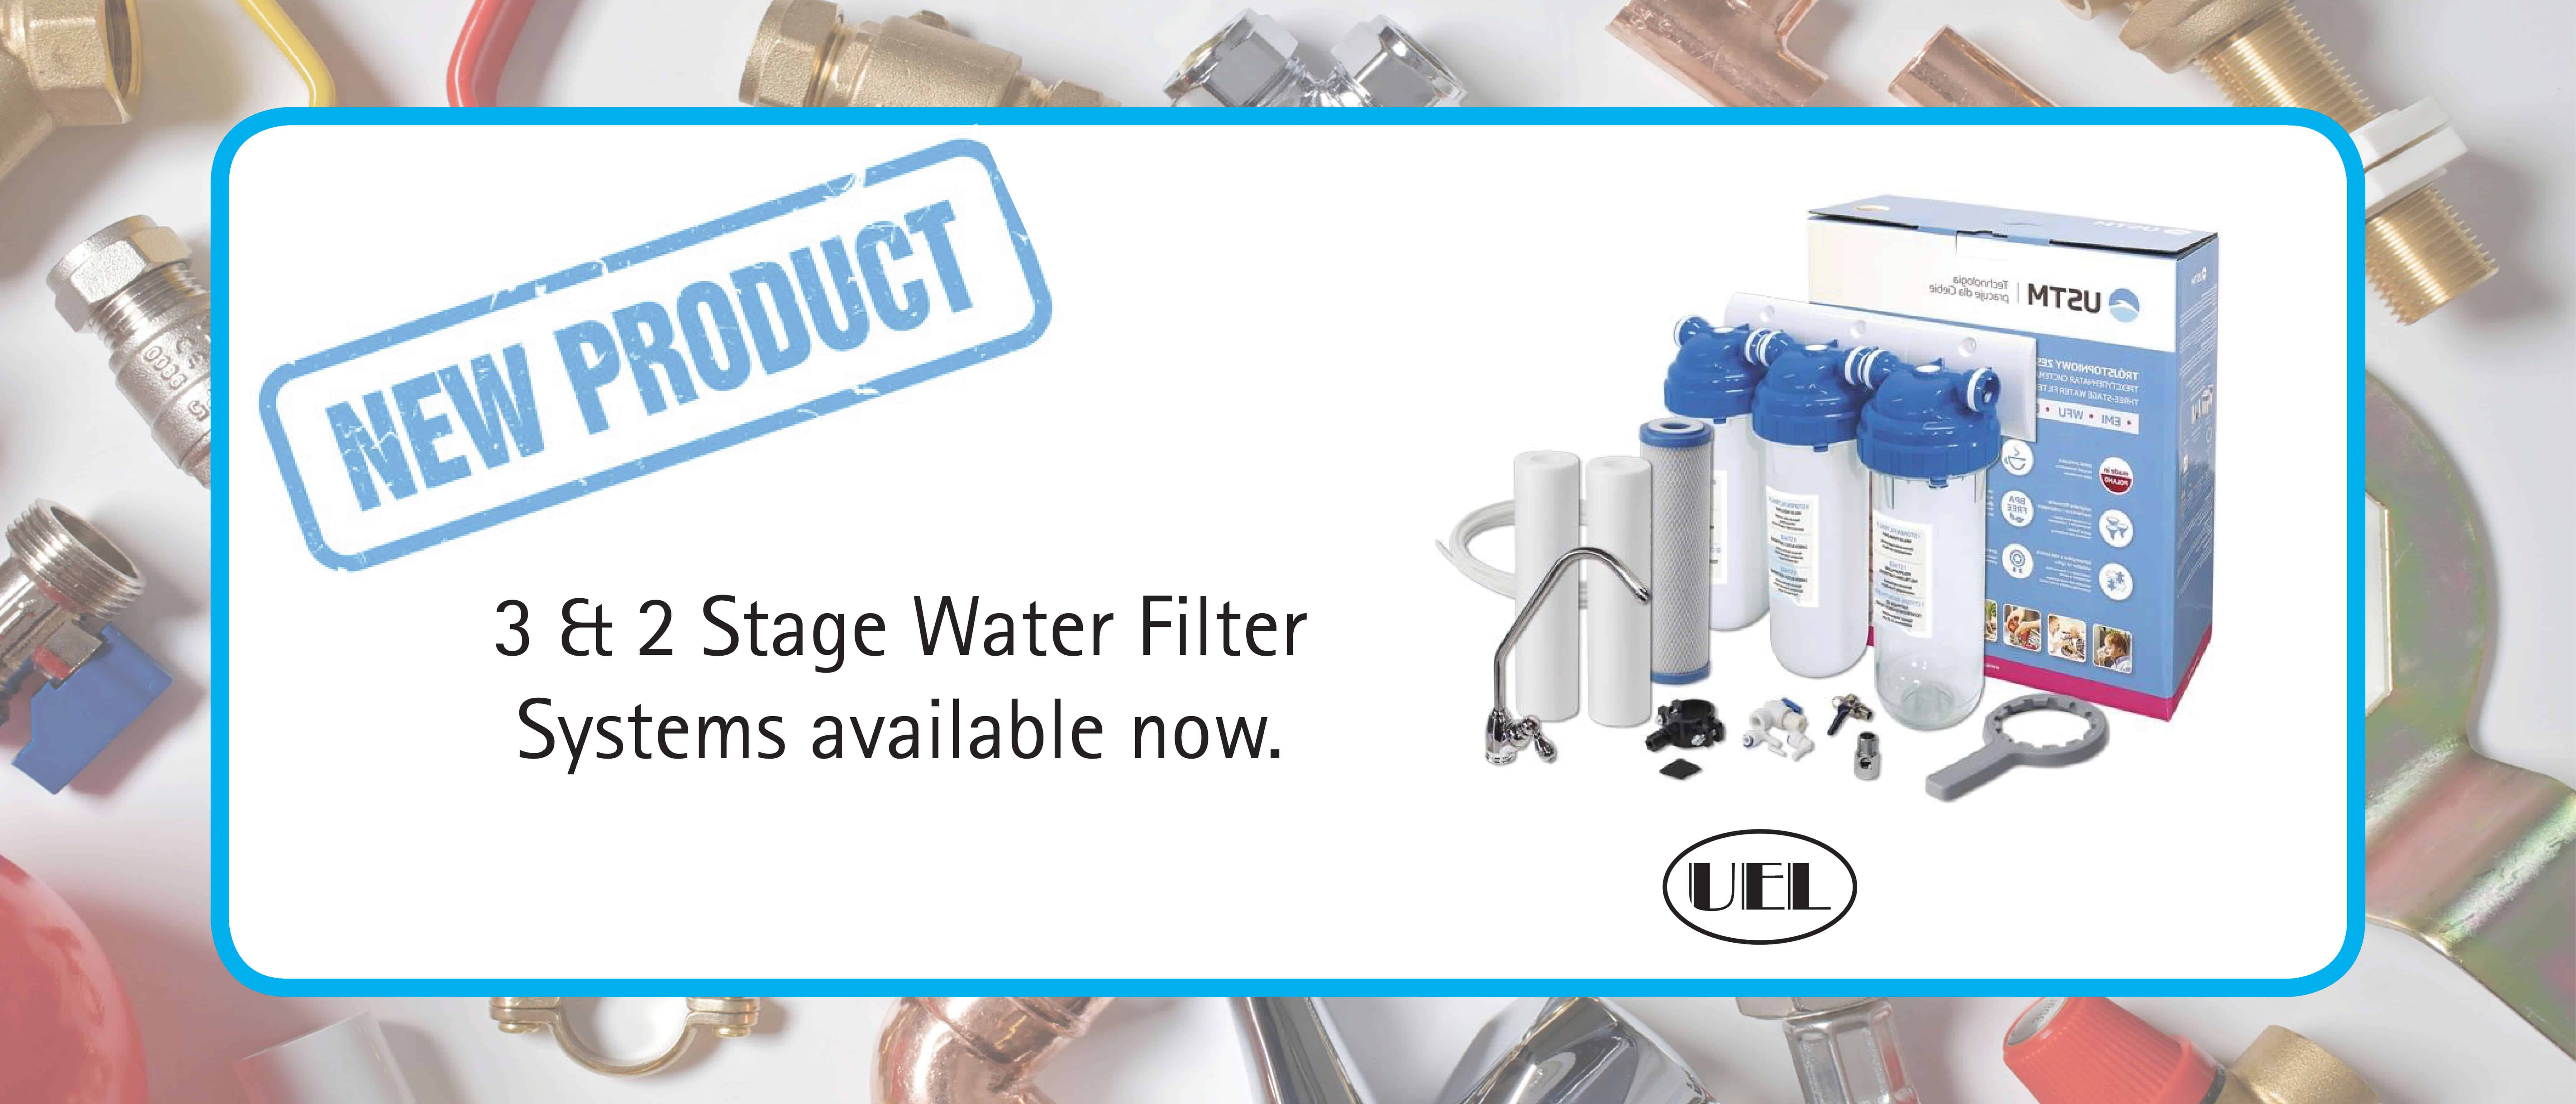 New Product Alert – 2 & 3 Stage Water Filter  Systems